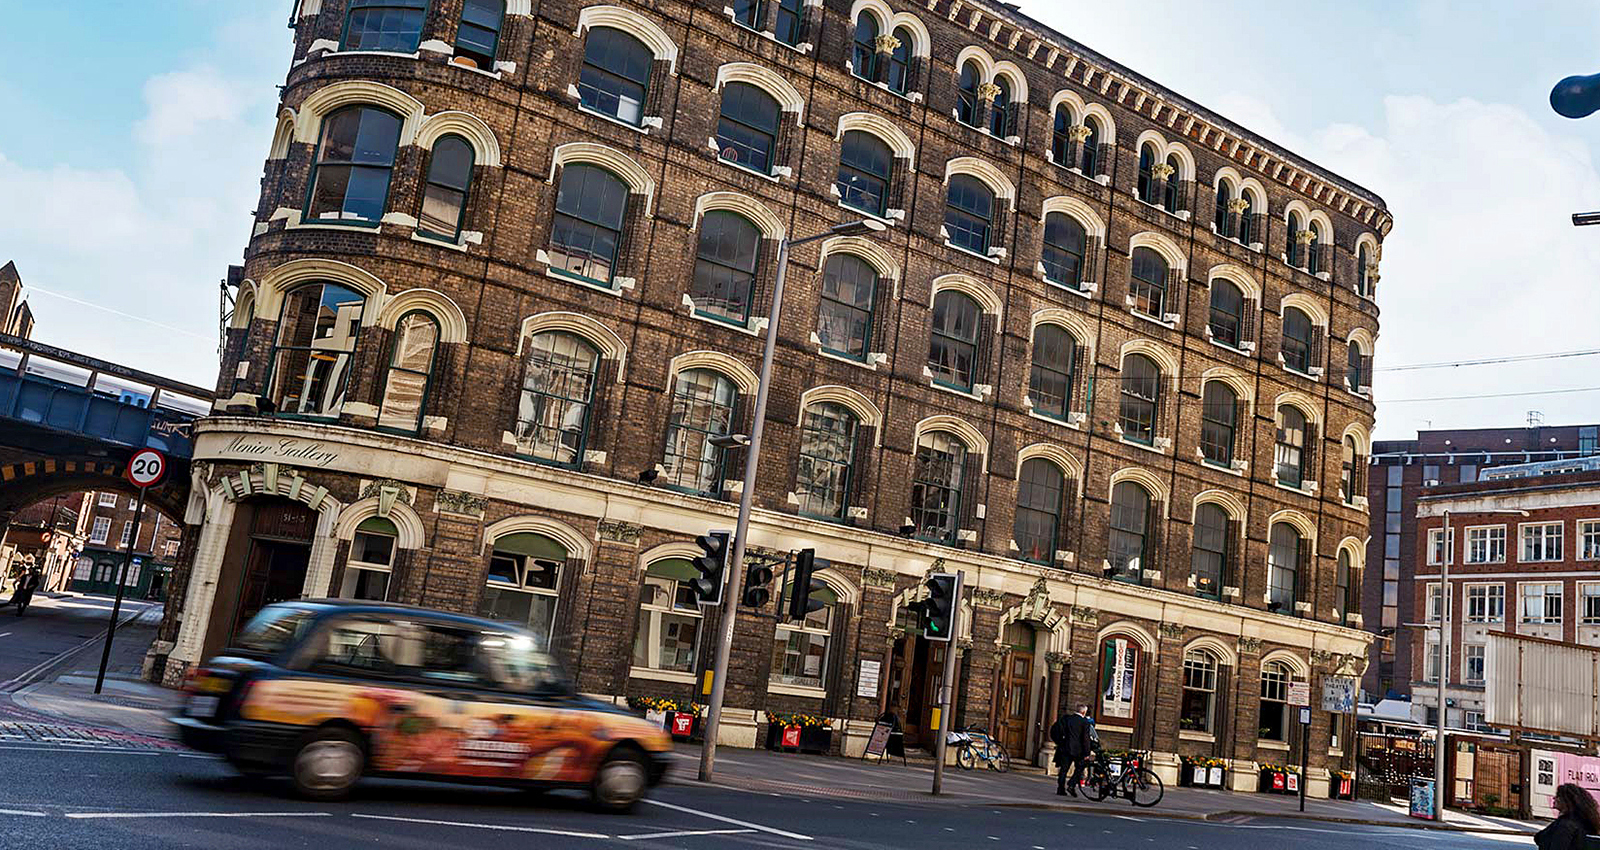 Exterior of the Menier Chocolate Factory building